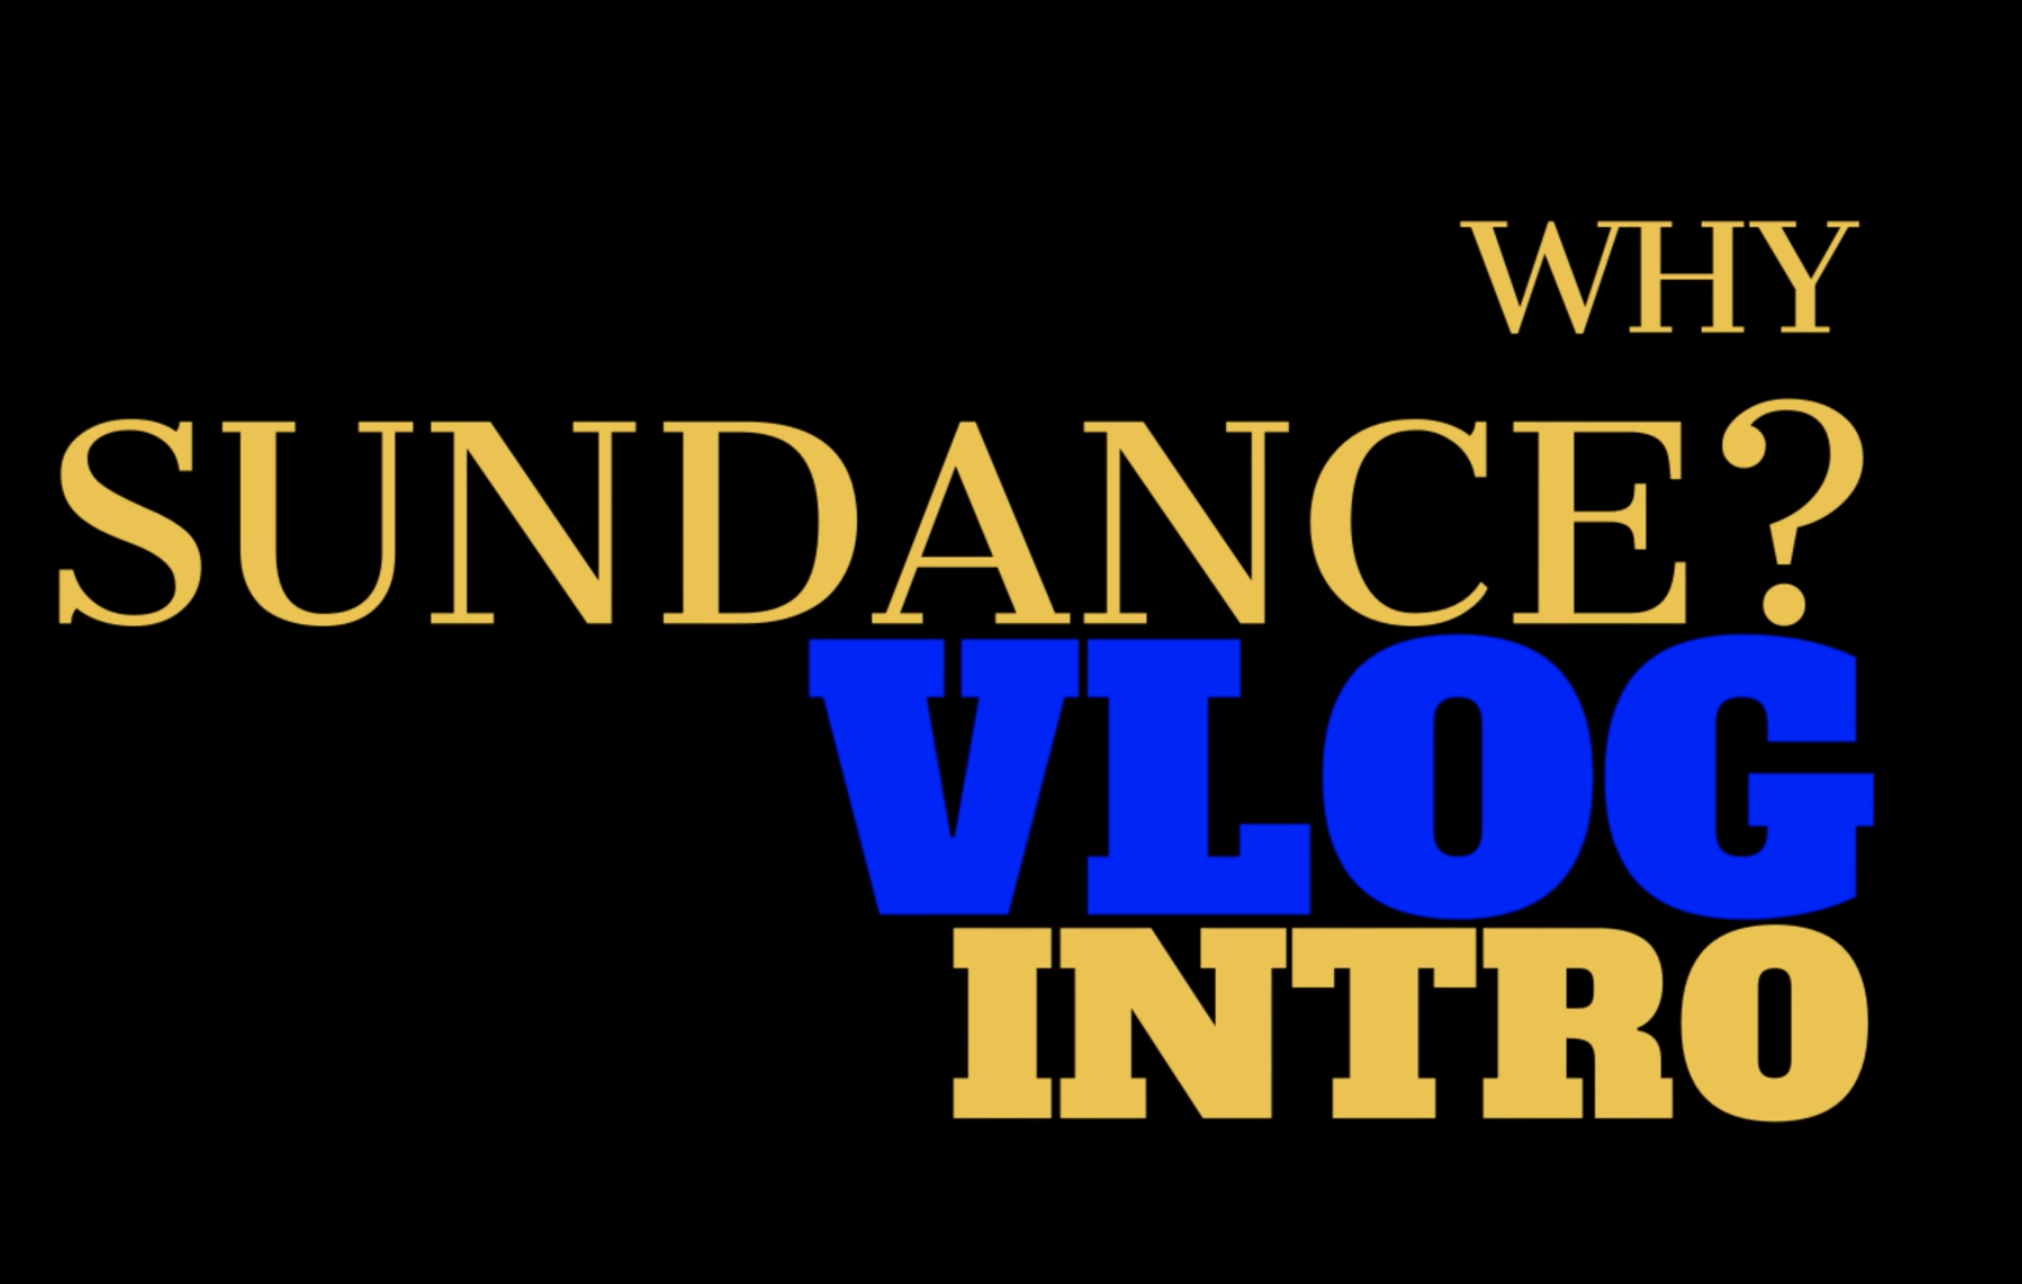 Why Sundance? VLOG